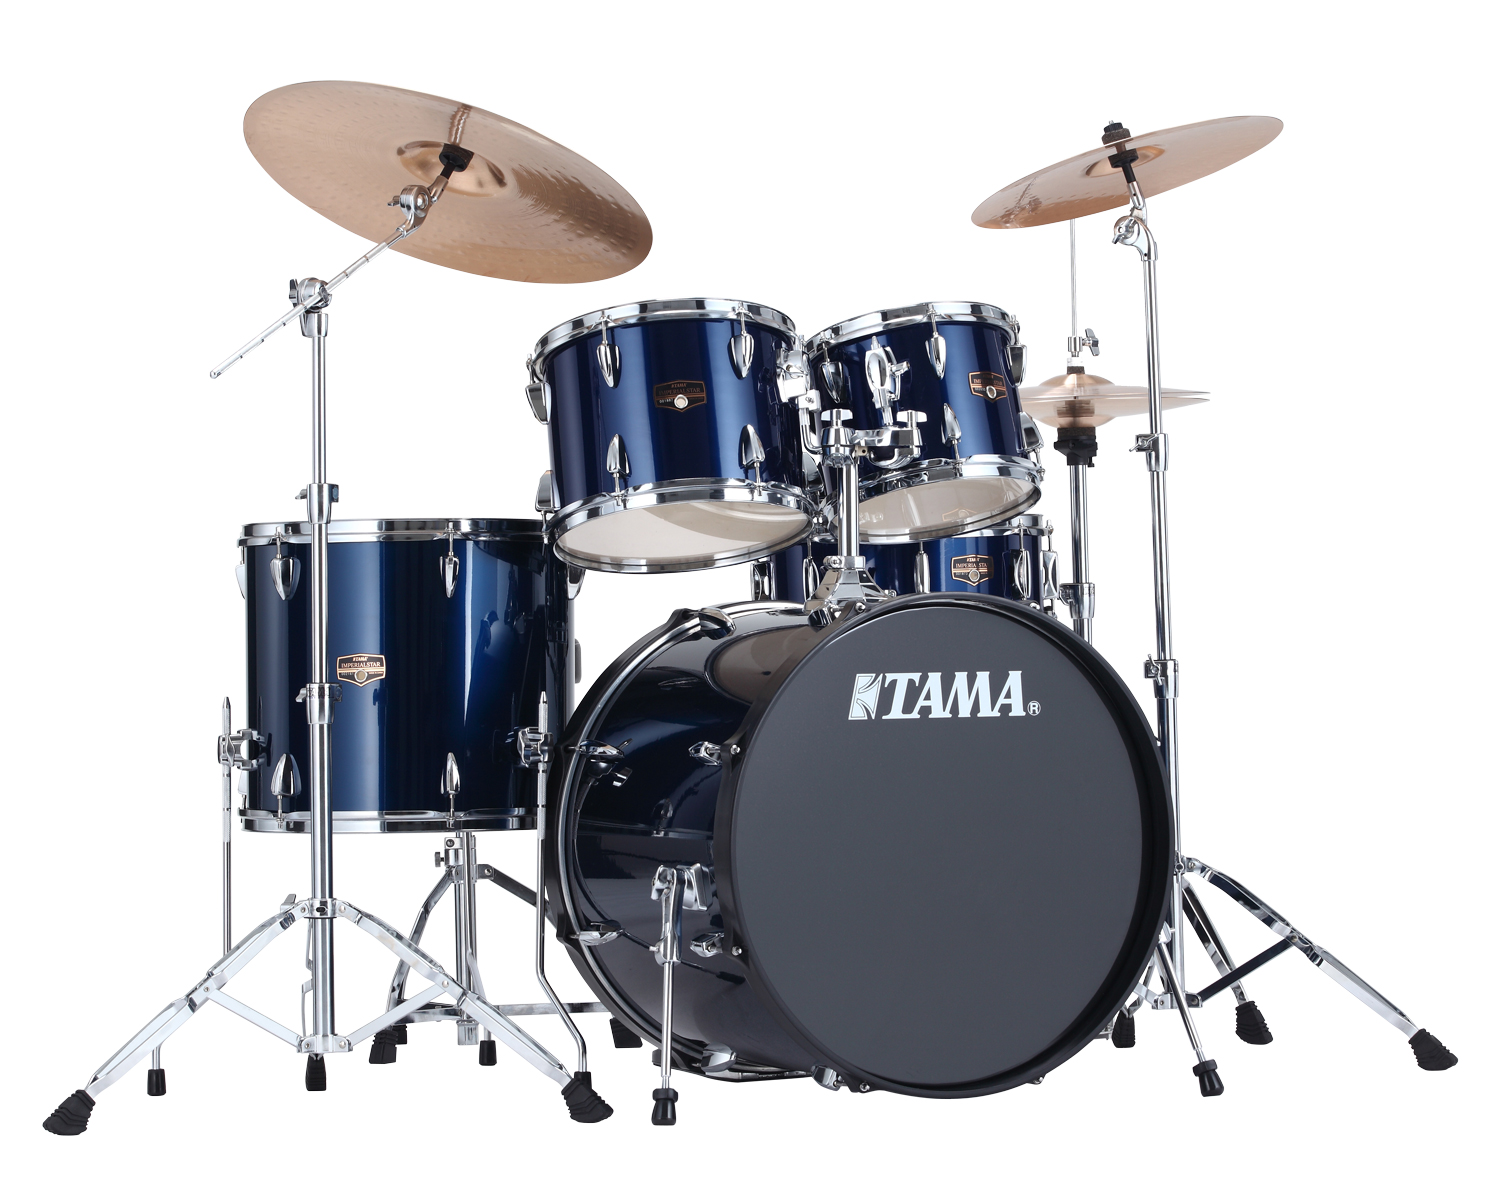 musicworks drums percussion rock drum kits rock kits tama imperialstar 5 piece rock. Black Bedroom Furniture Sets. Home Design Ideas